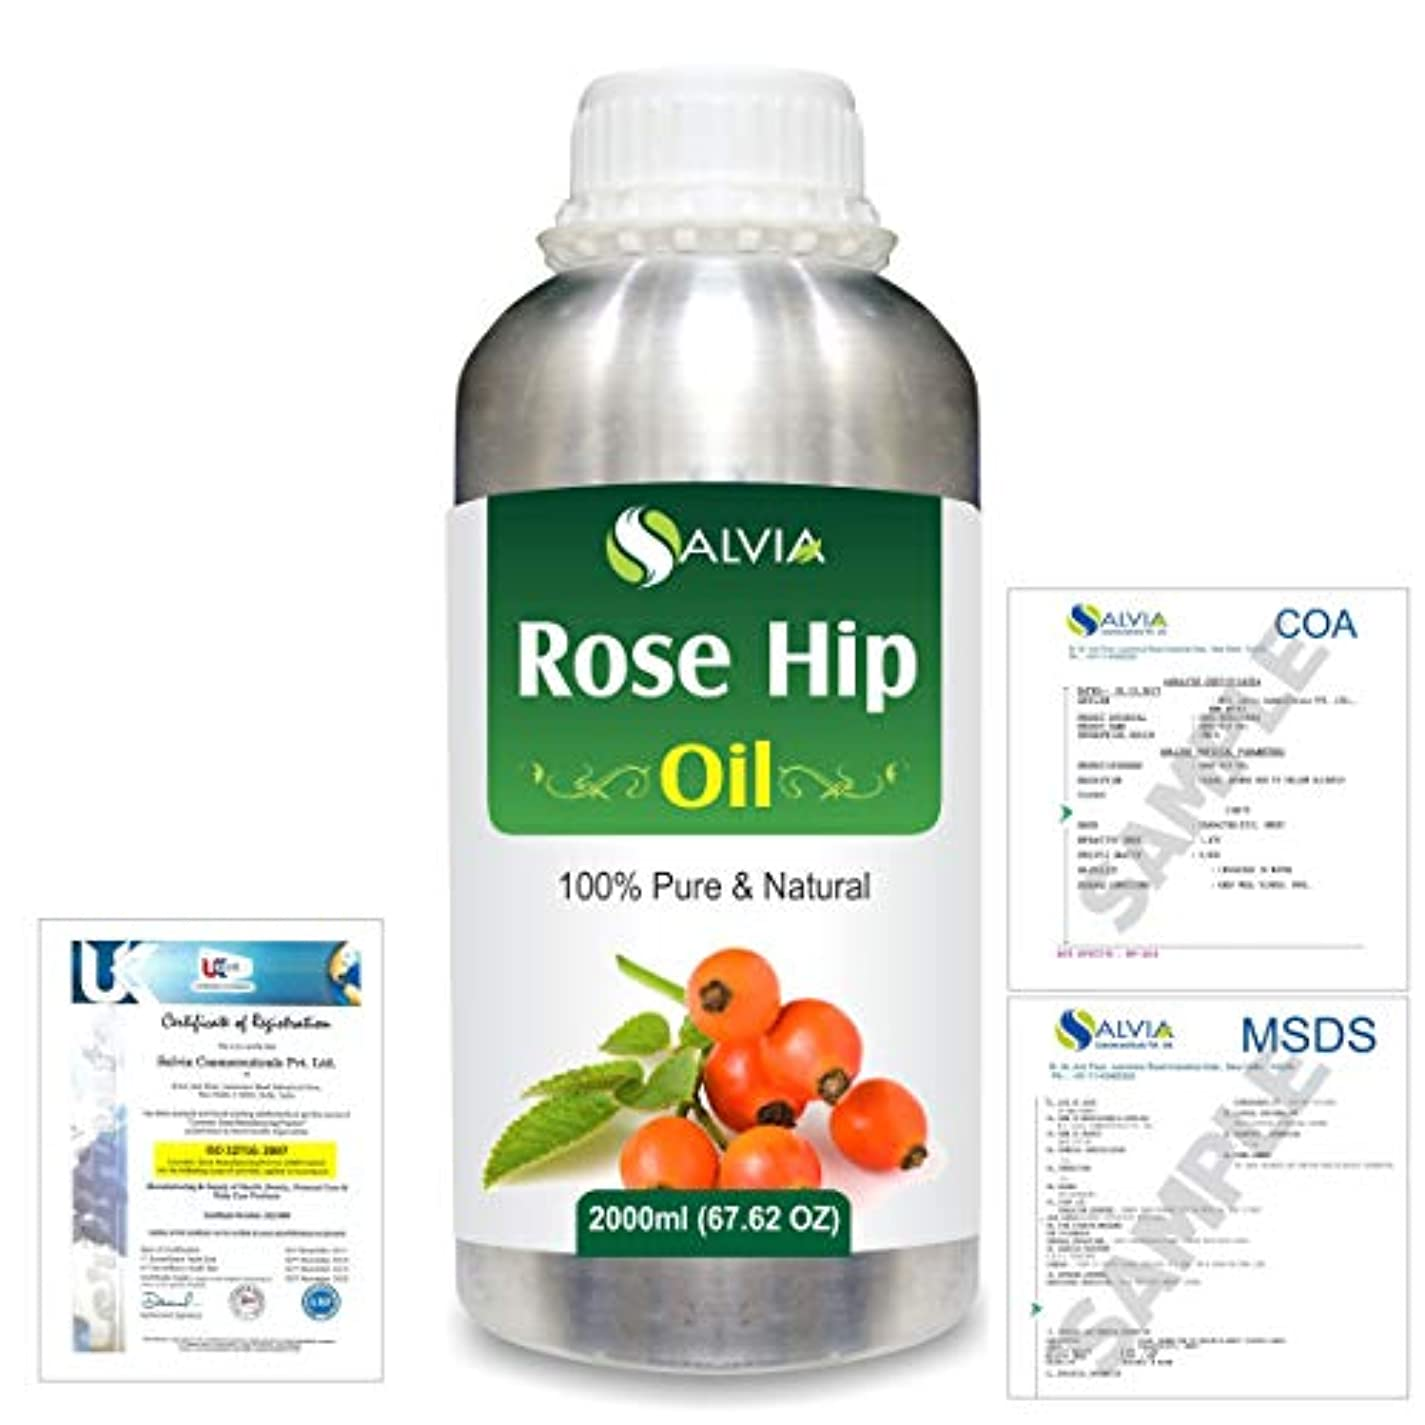 組み立てる悪化させるぼんやりしたRose Hip (Rosa moschata) Natural Pure Undiluted Uncut Carrier Oil 2000ml/67 fl.oz.